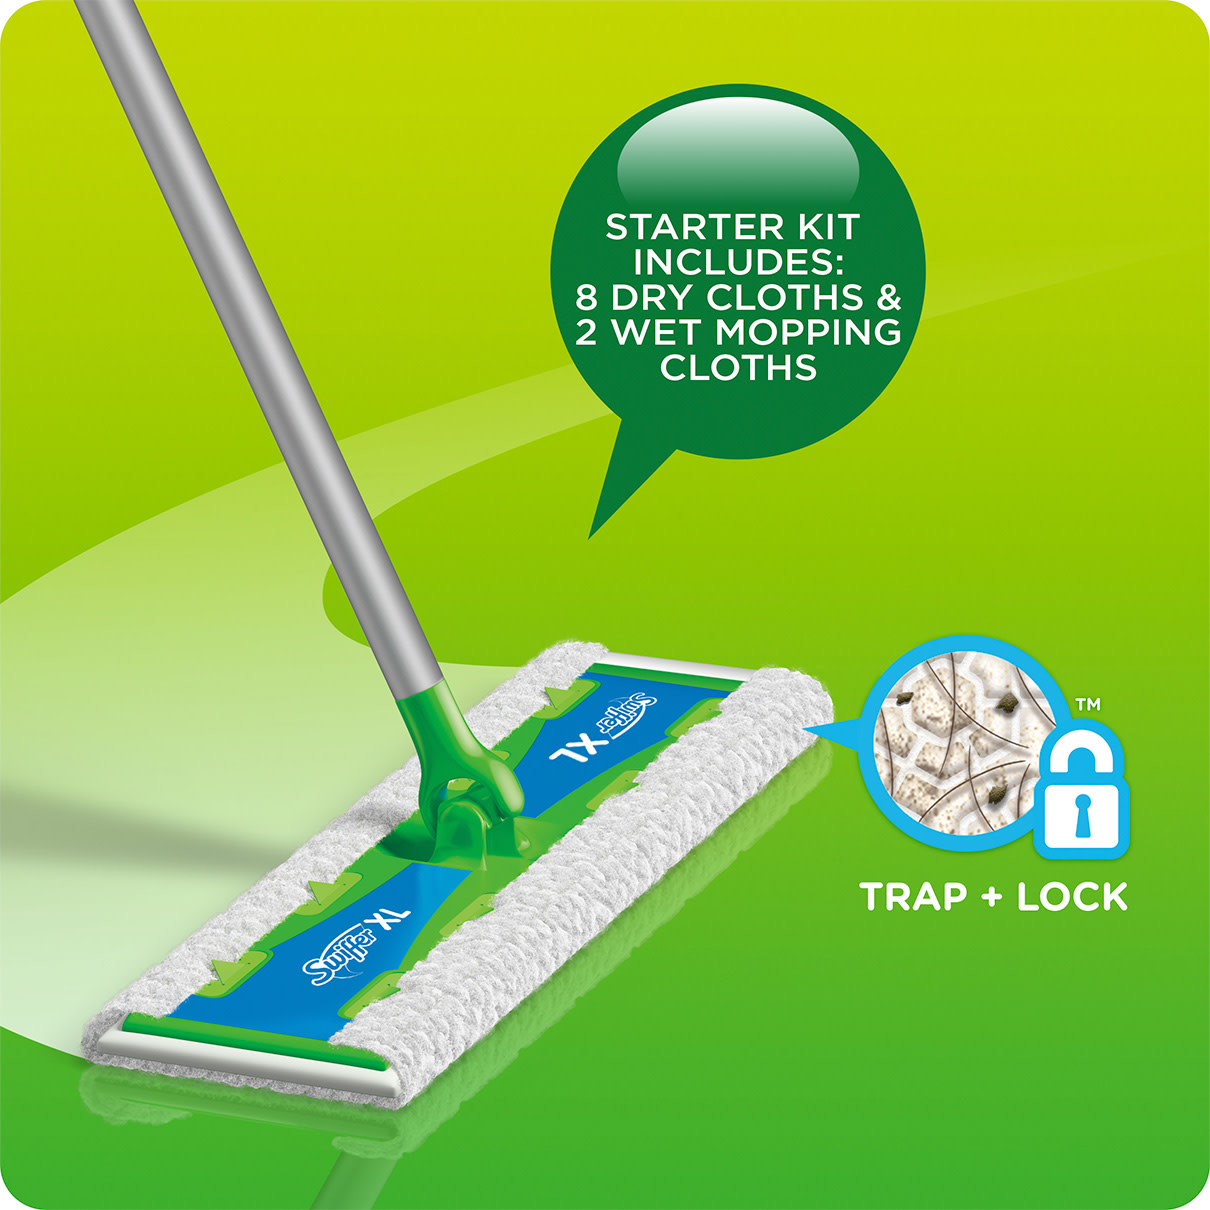 Swiffer Sweeper XL Starter Kit Includes 8 Dry & 2 Wet Cloths